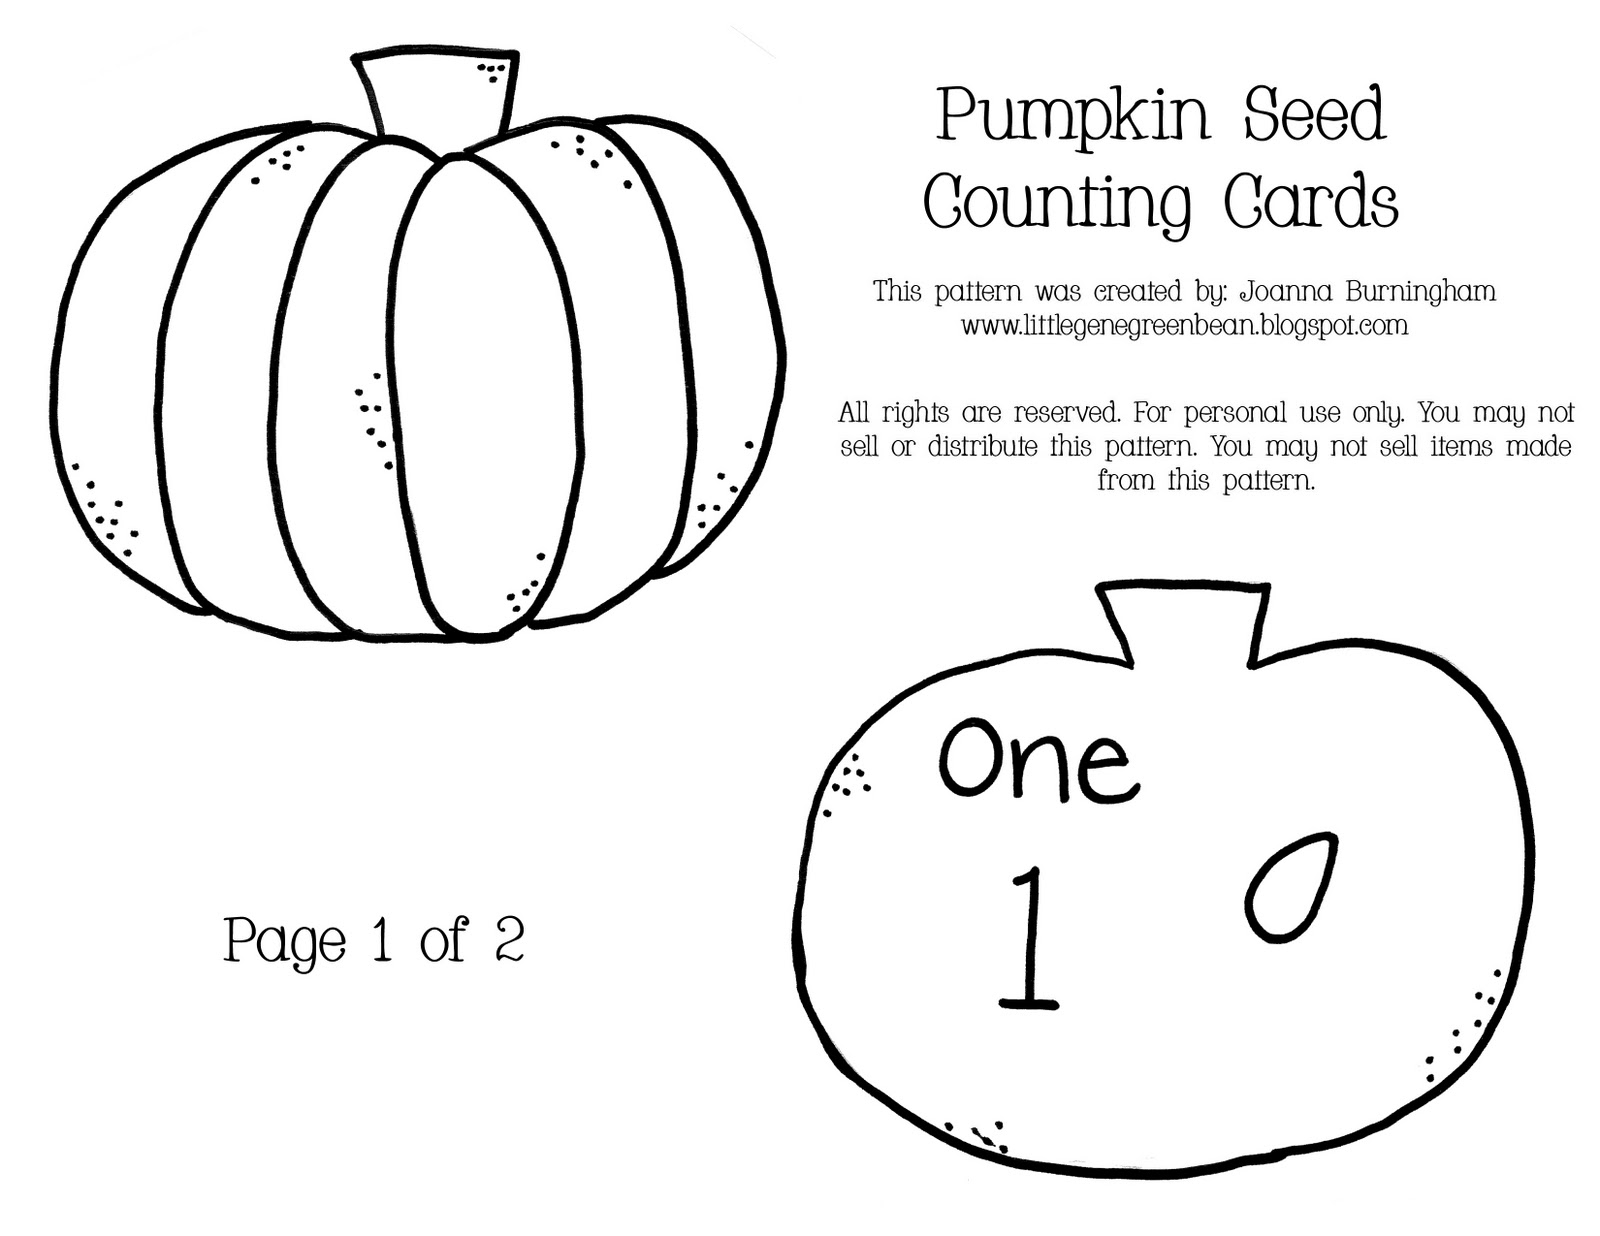 pumpkin seed coloring page - little gene green bean it 39 s pumpkin time unit 3